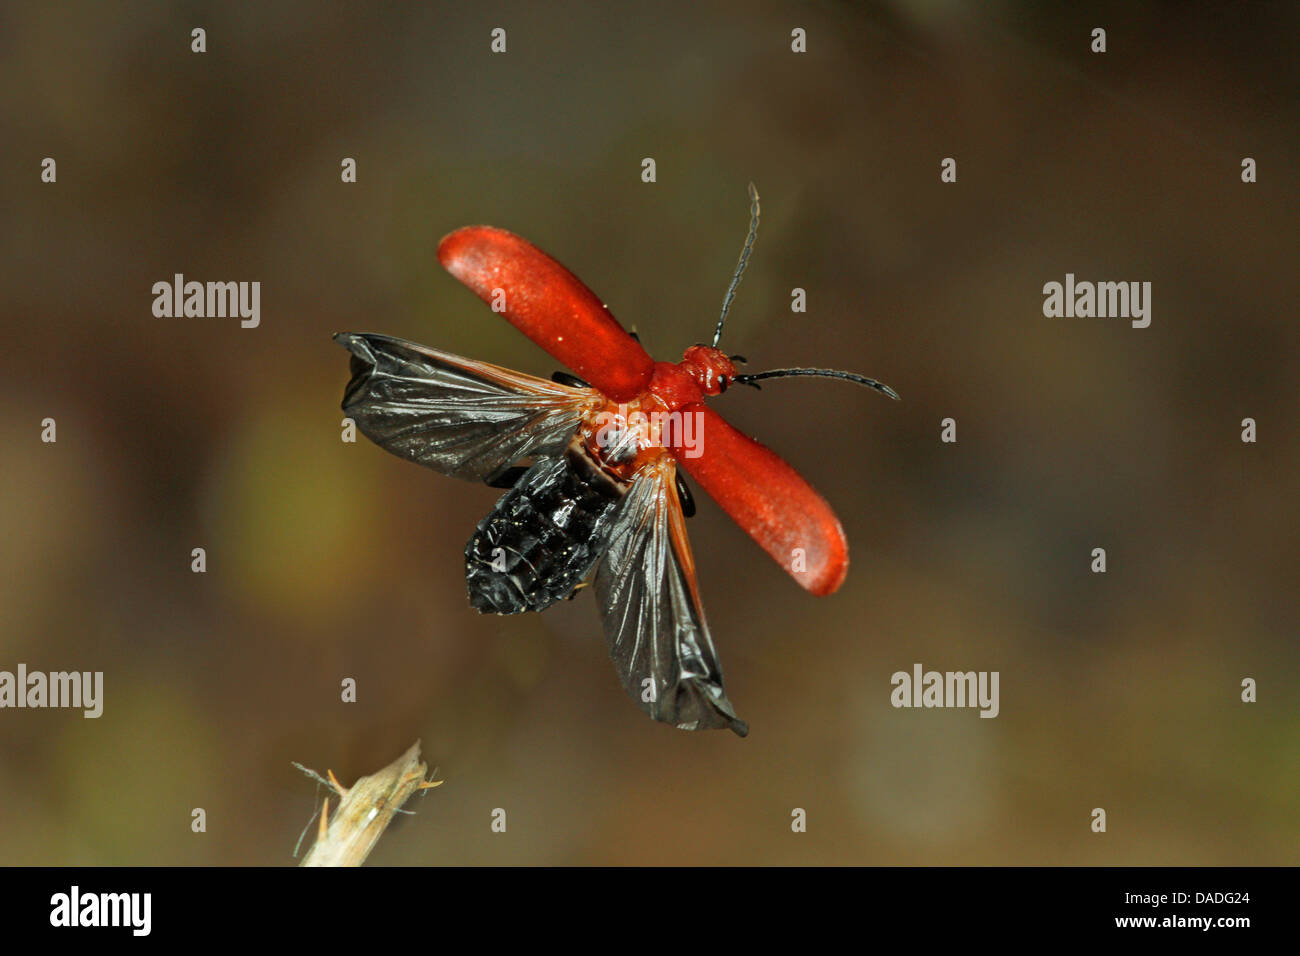 scarlet fire beetle, cardinal beetle (Pyrochroa coccinea), flying, Germany - Stock Image